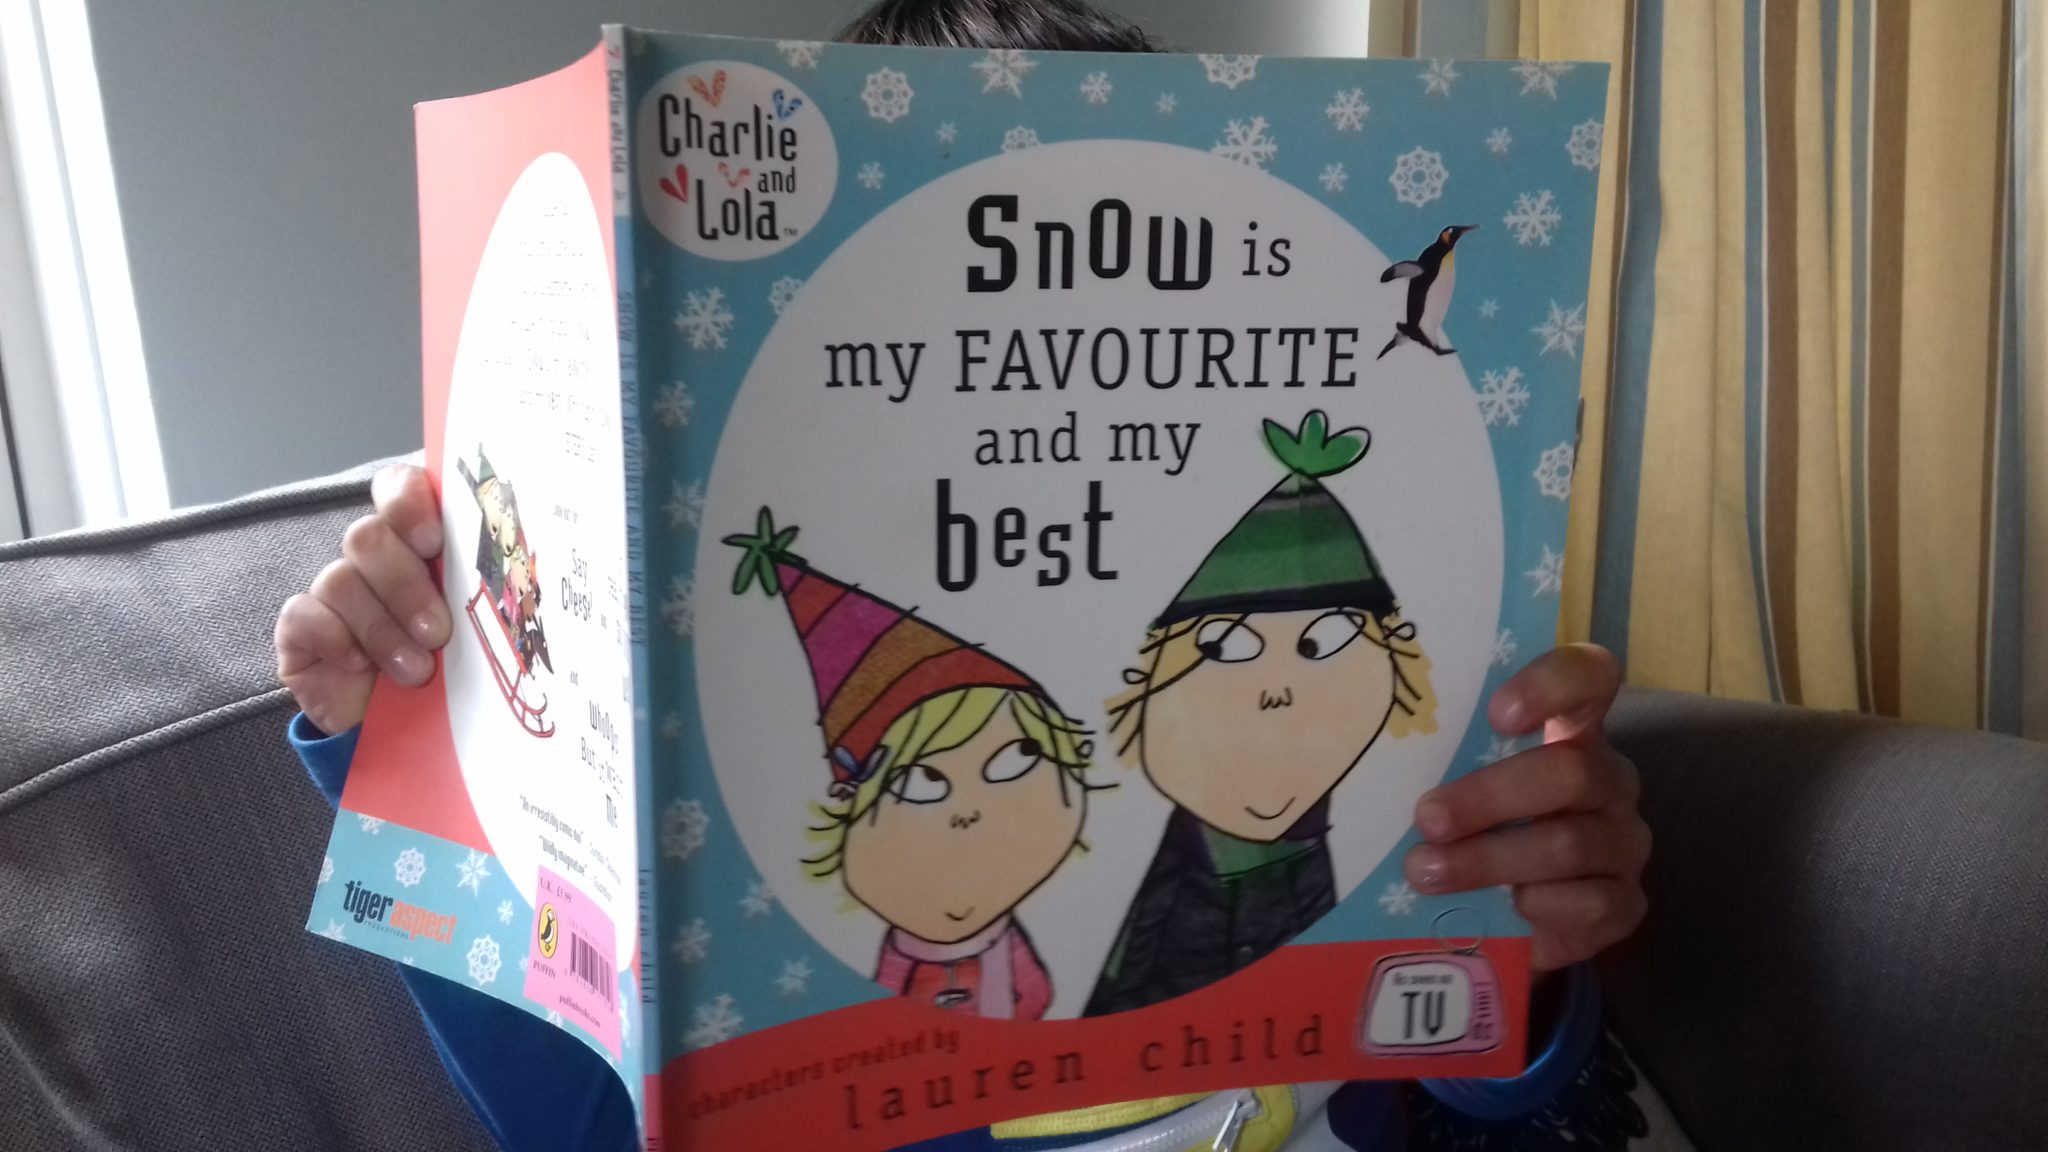 Snow is my favourite and my best - Lauren Child. The best books for kids about race that they need on their bookshelves. in classrooms and in libraries. These 25+ suggestions have all been enjoyed by our family, and are guaranteed to raise healthy discussions about cultural diversity.